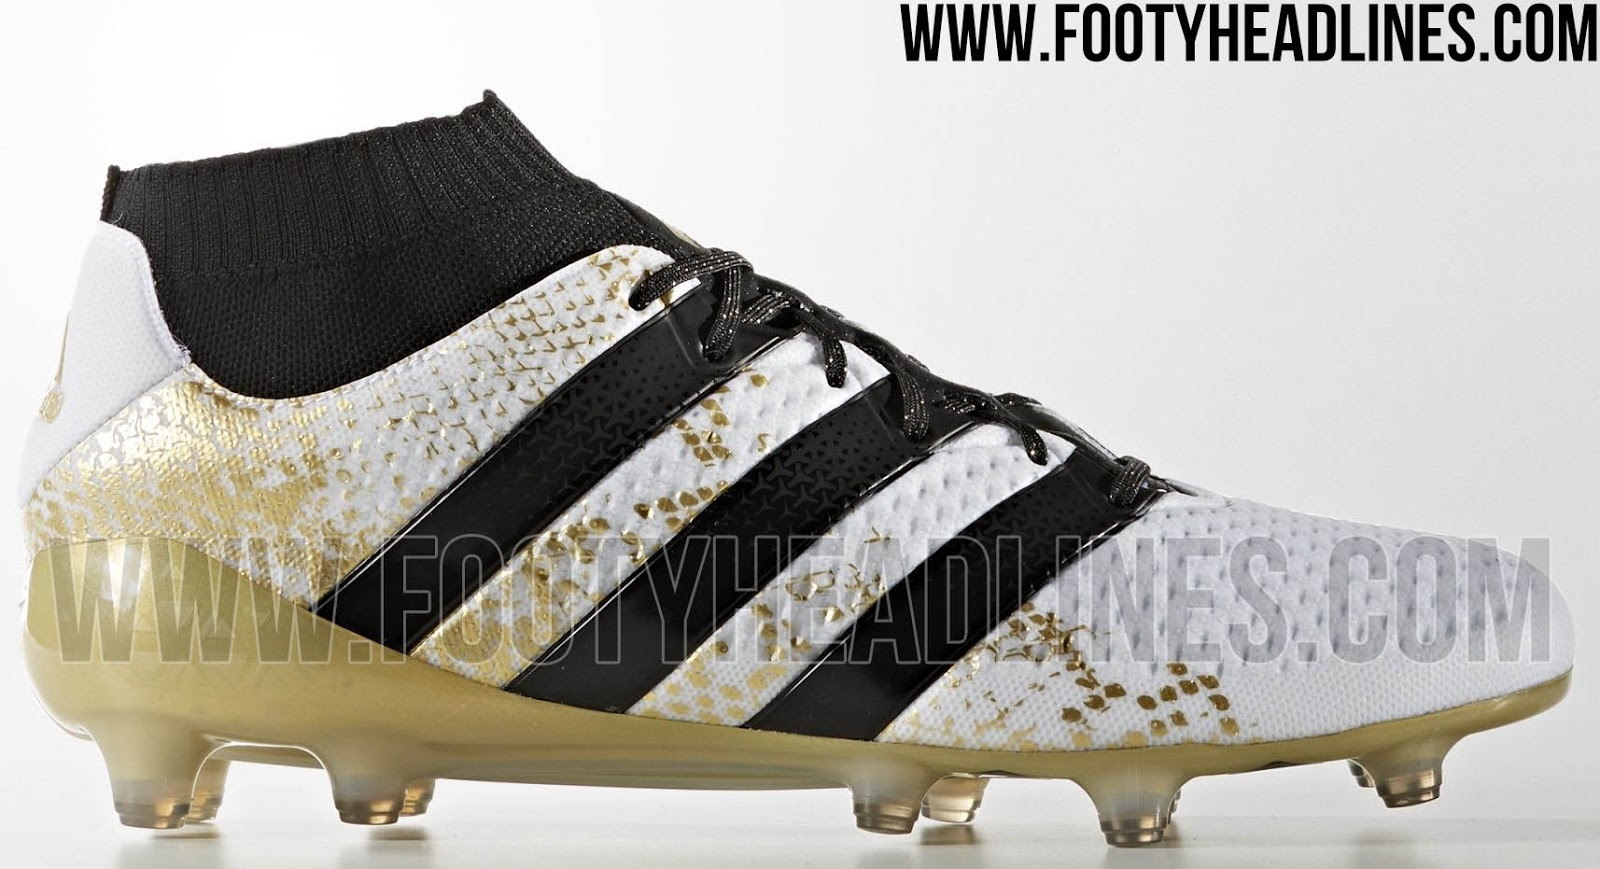 Adidas Ace 16 Gold